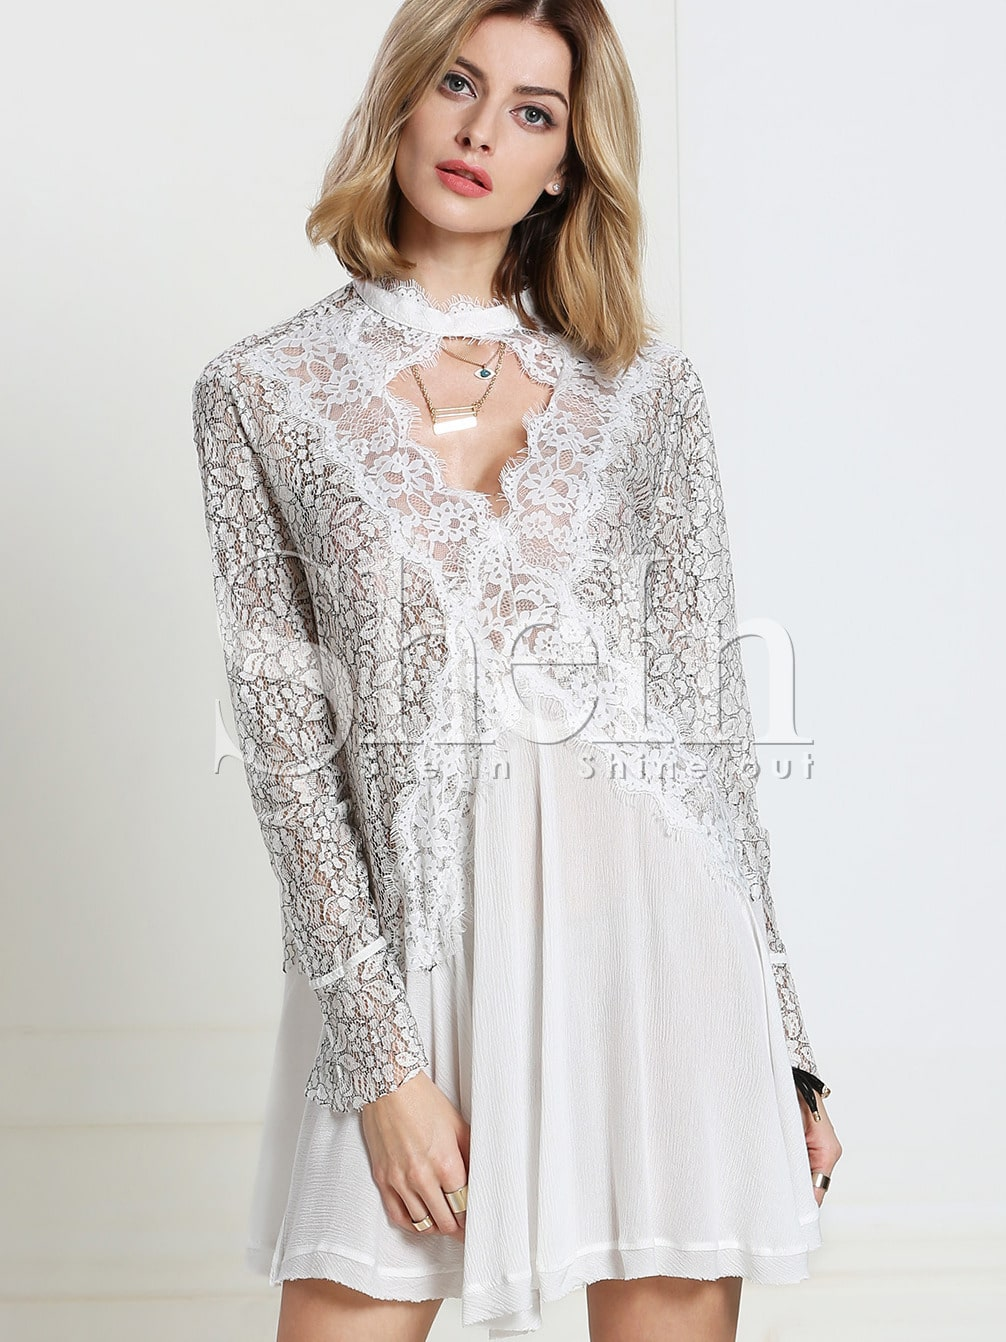 White Long Sleeve With Lace Dress -SheIn(Sheinside)